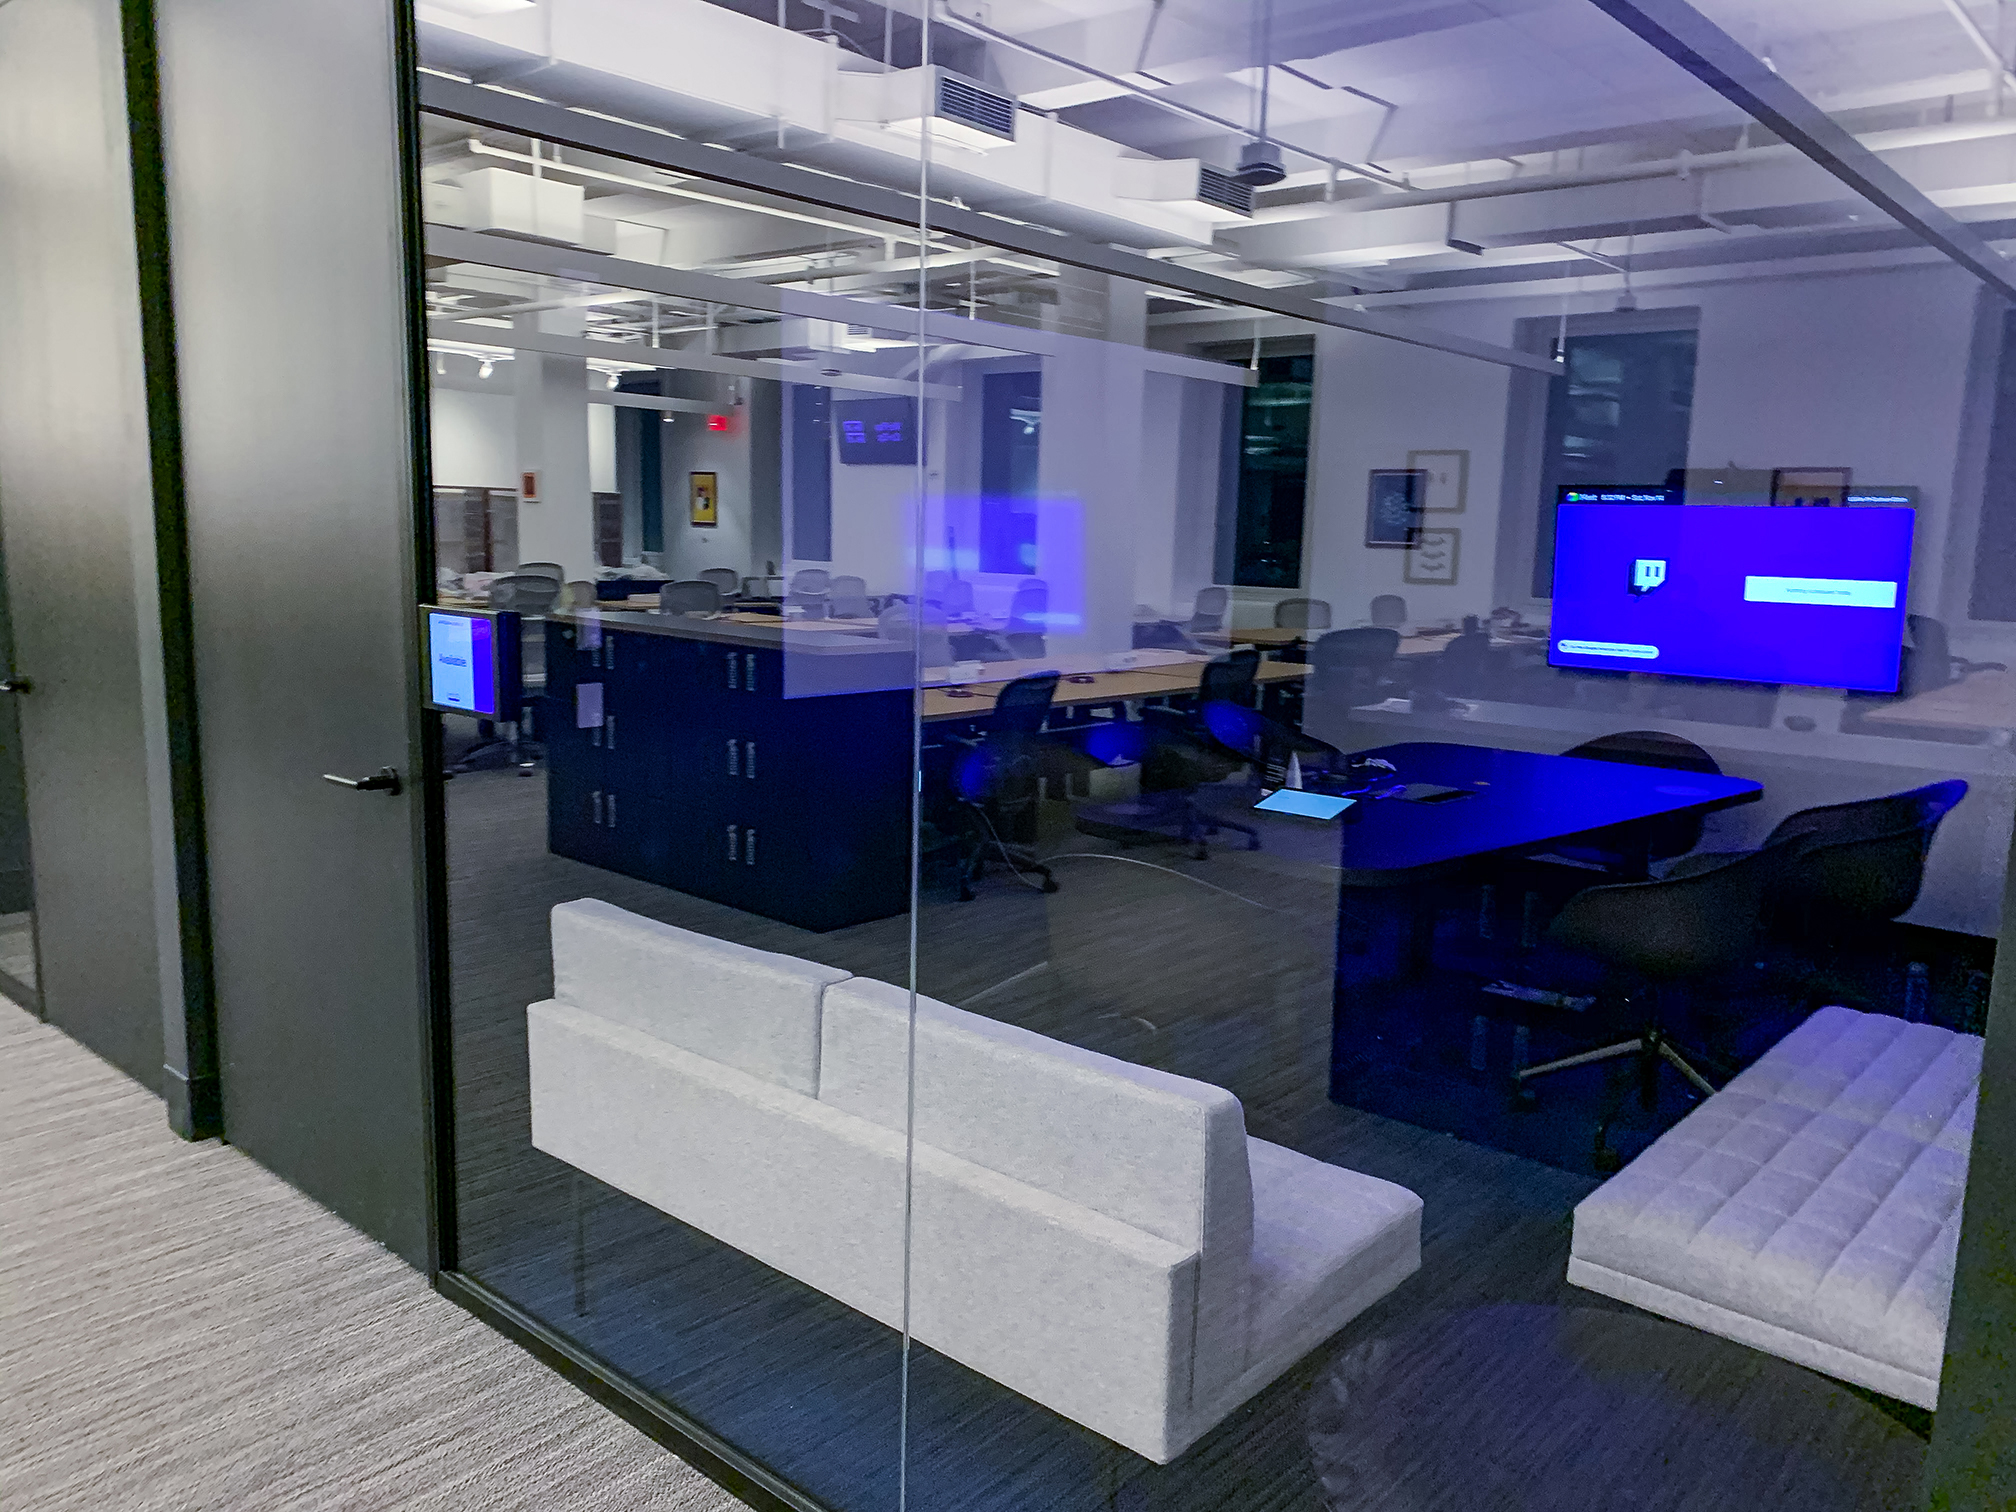 room schedulers used in Twitch's new headquarters